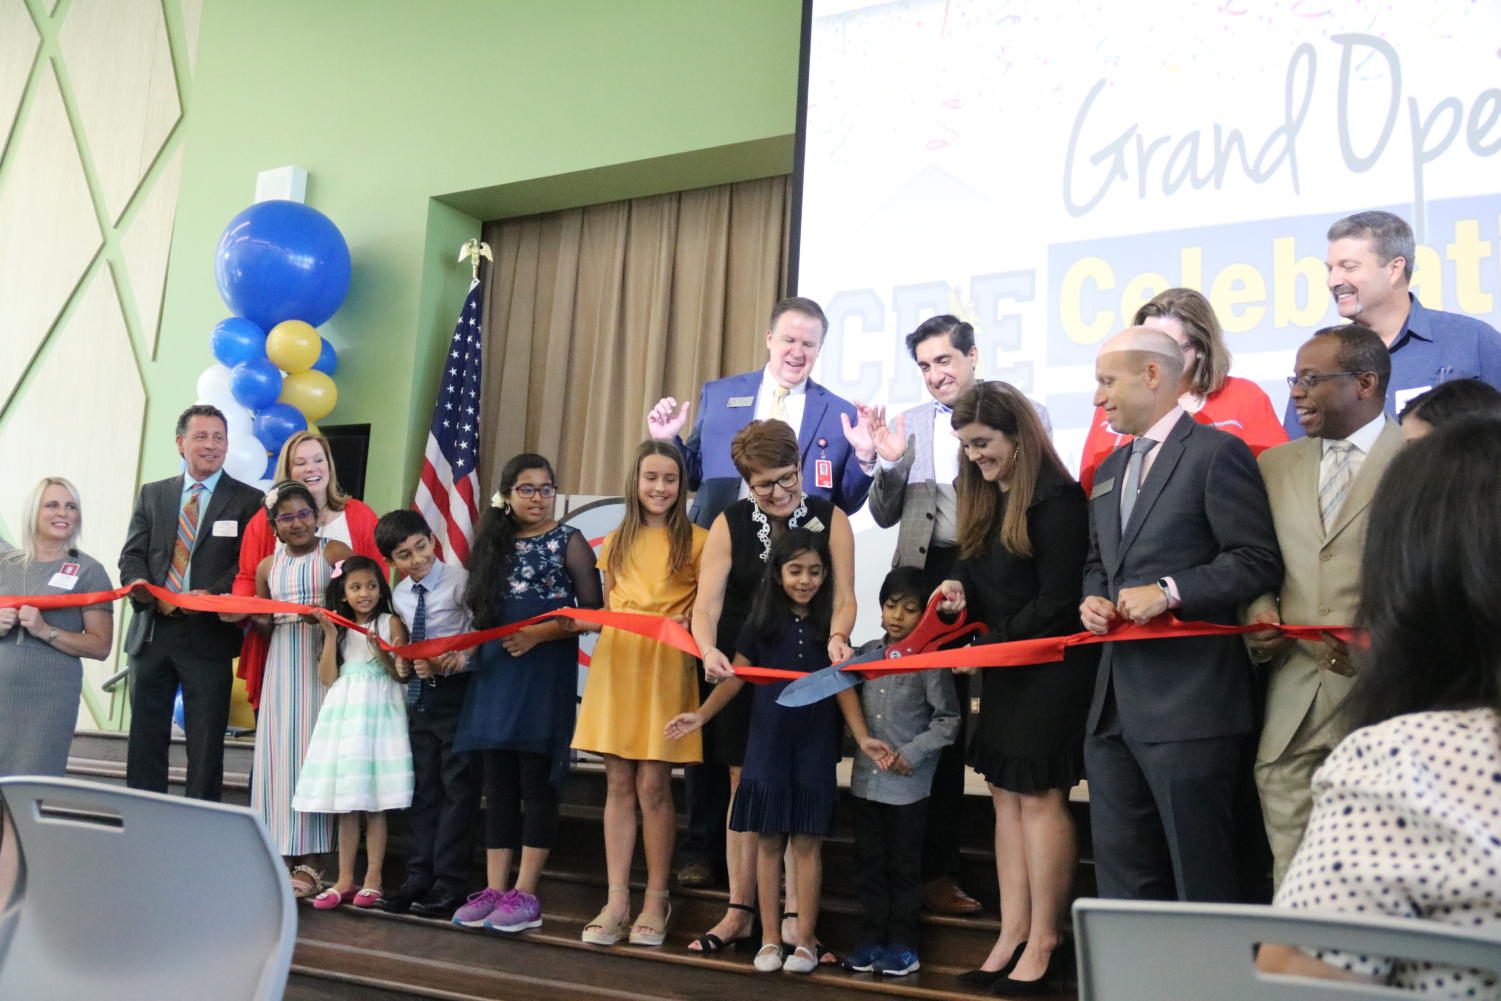 On Wednesday, Canyon Ranch Elementary Principal Ashley Minton cuts the red ribbon to commemorate the official opening of the school. CRE is the 11th CISD elementary school and was built to combat the overpopulation issues throughout CISD schools.